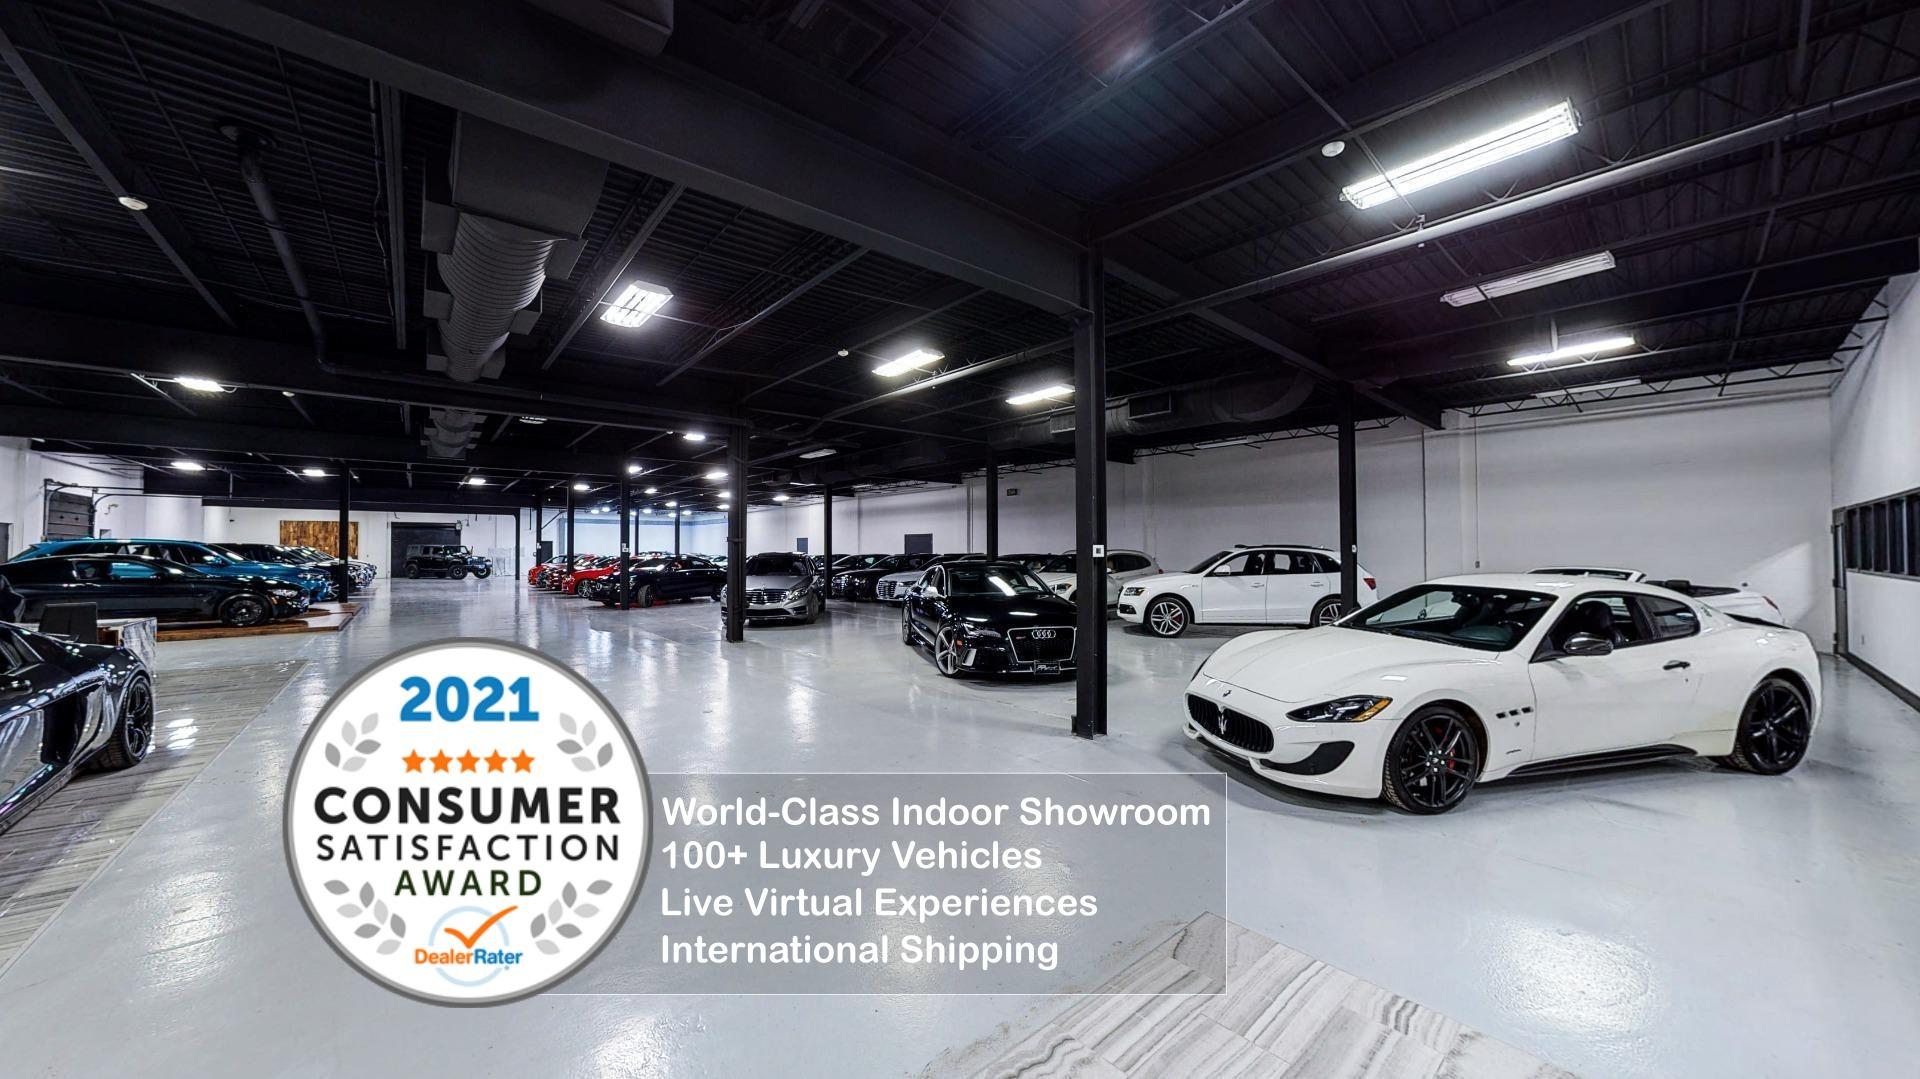 Used 2017 Maserati Ghibli S Q4 for sale $38,495 at Perfect Auto Collection in Akron OH 44310 3